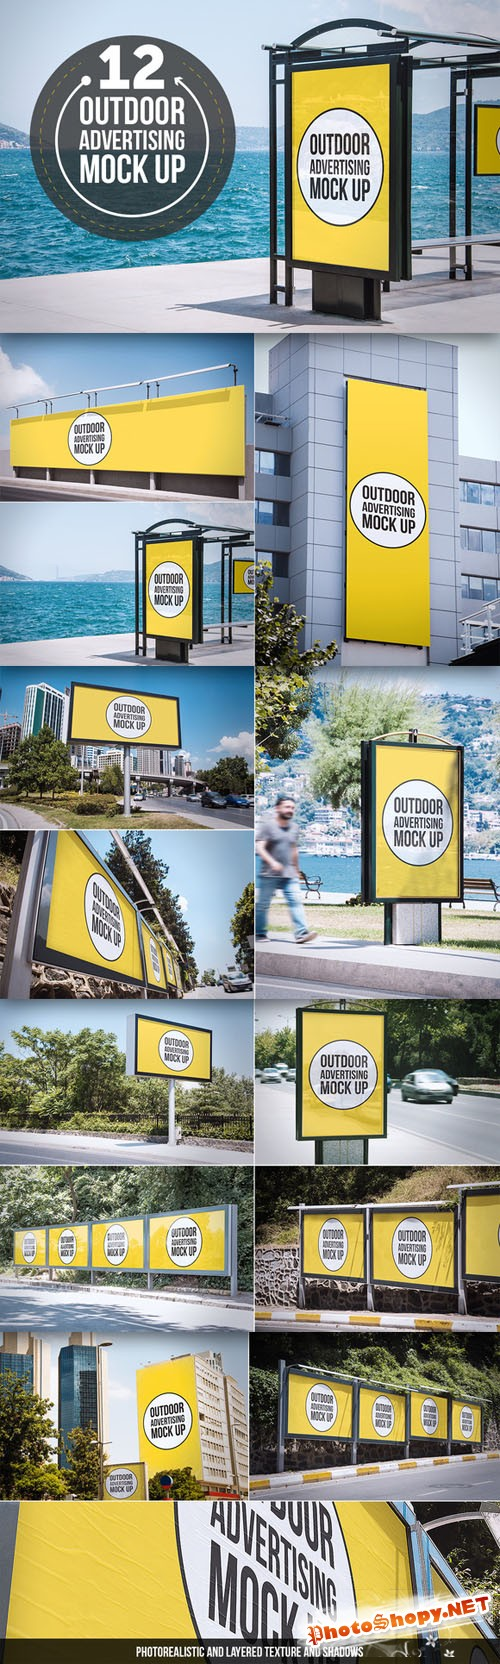 CreativeMarket - Outdoor Advertising Mock Up 75858